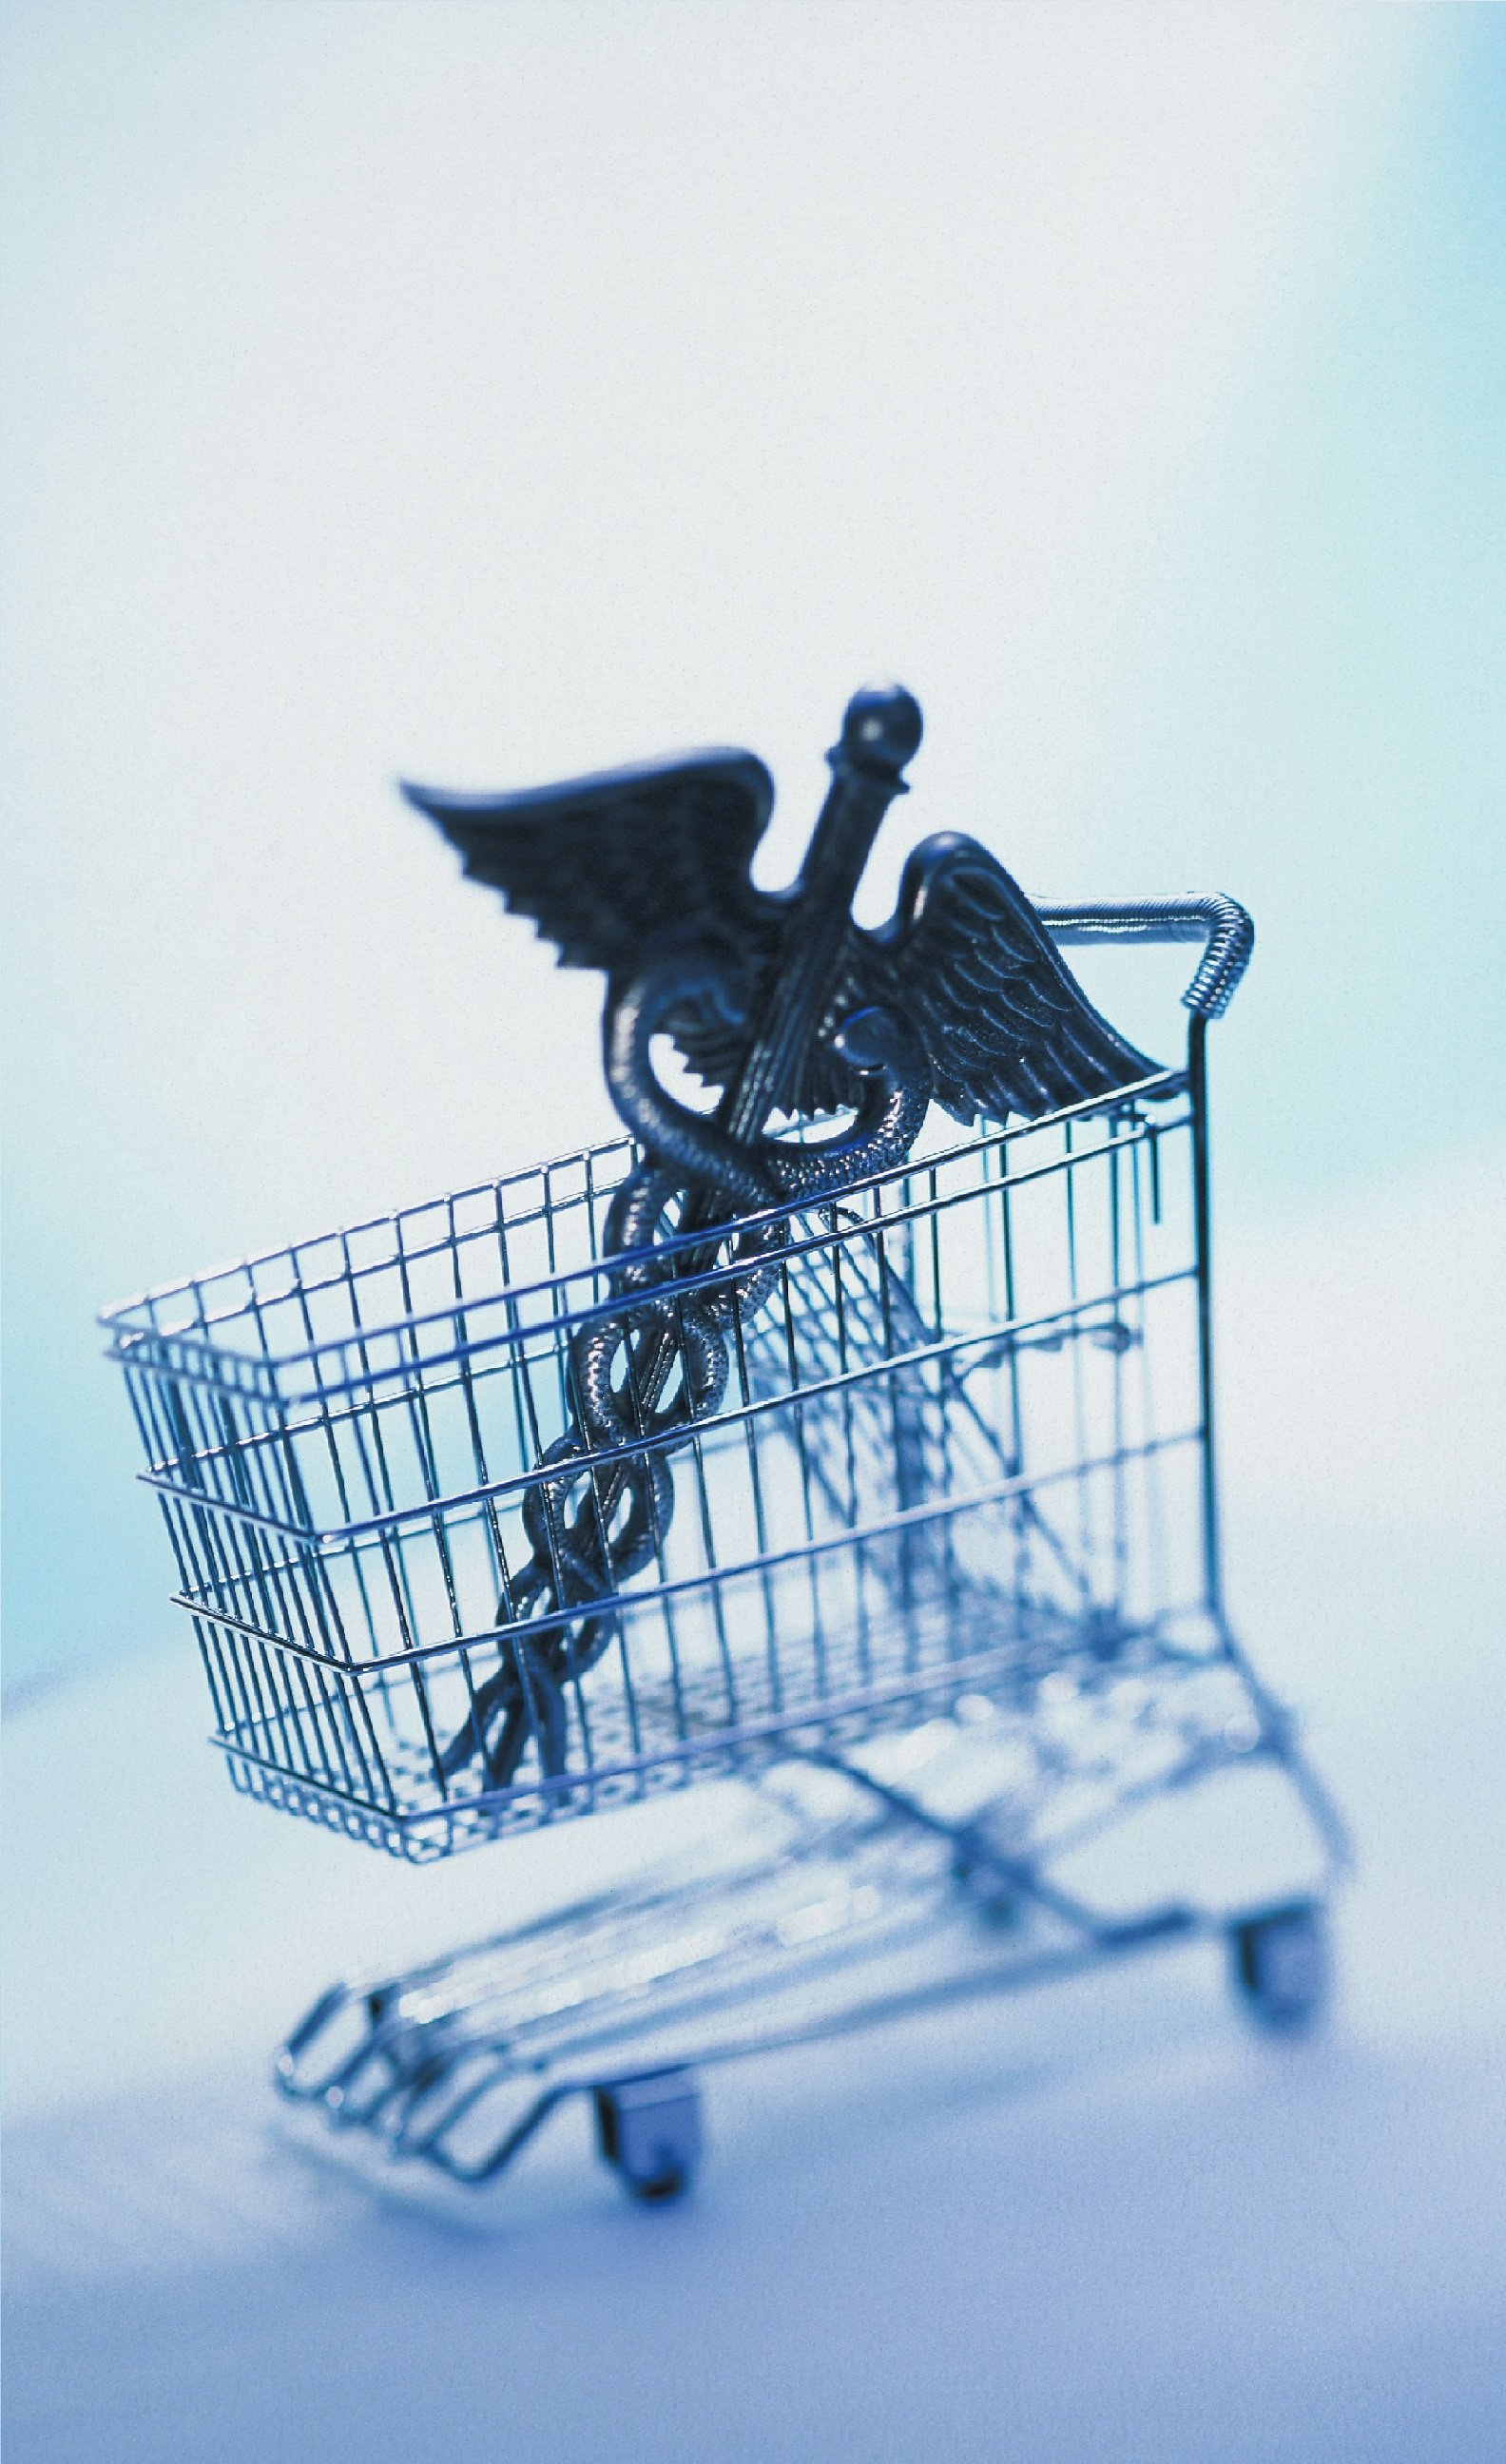 health insurance symbol in a shopping cart